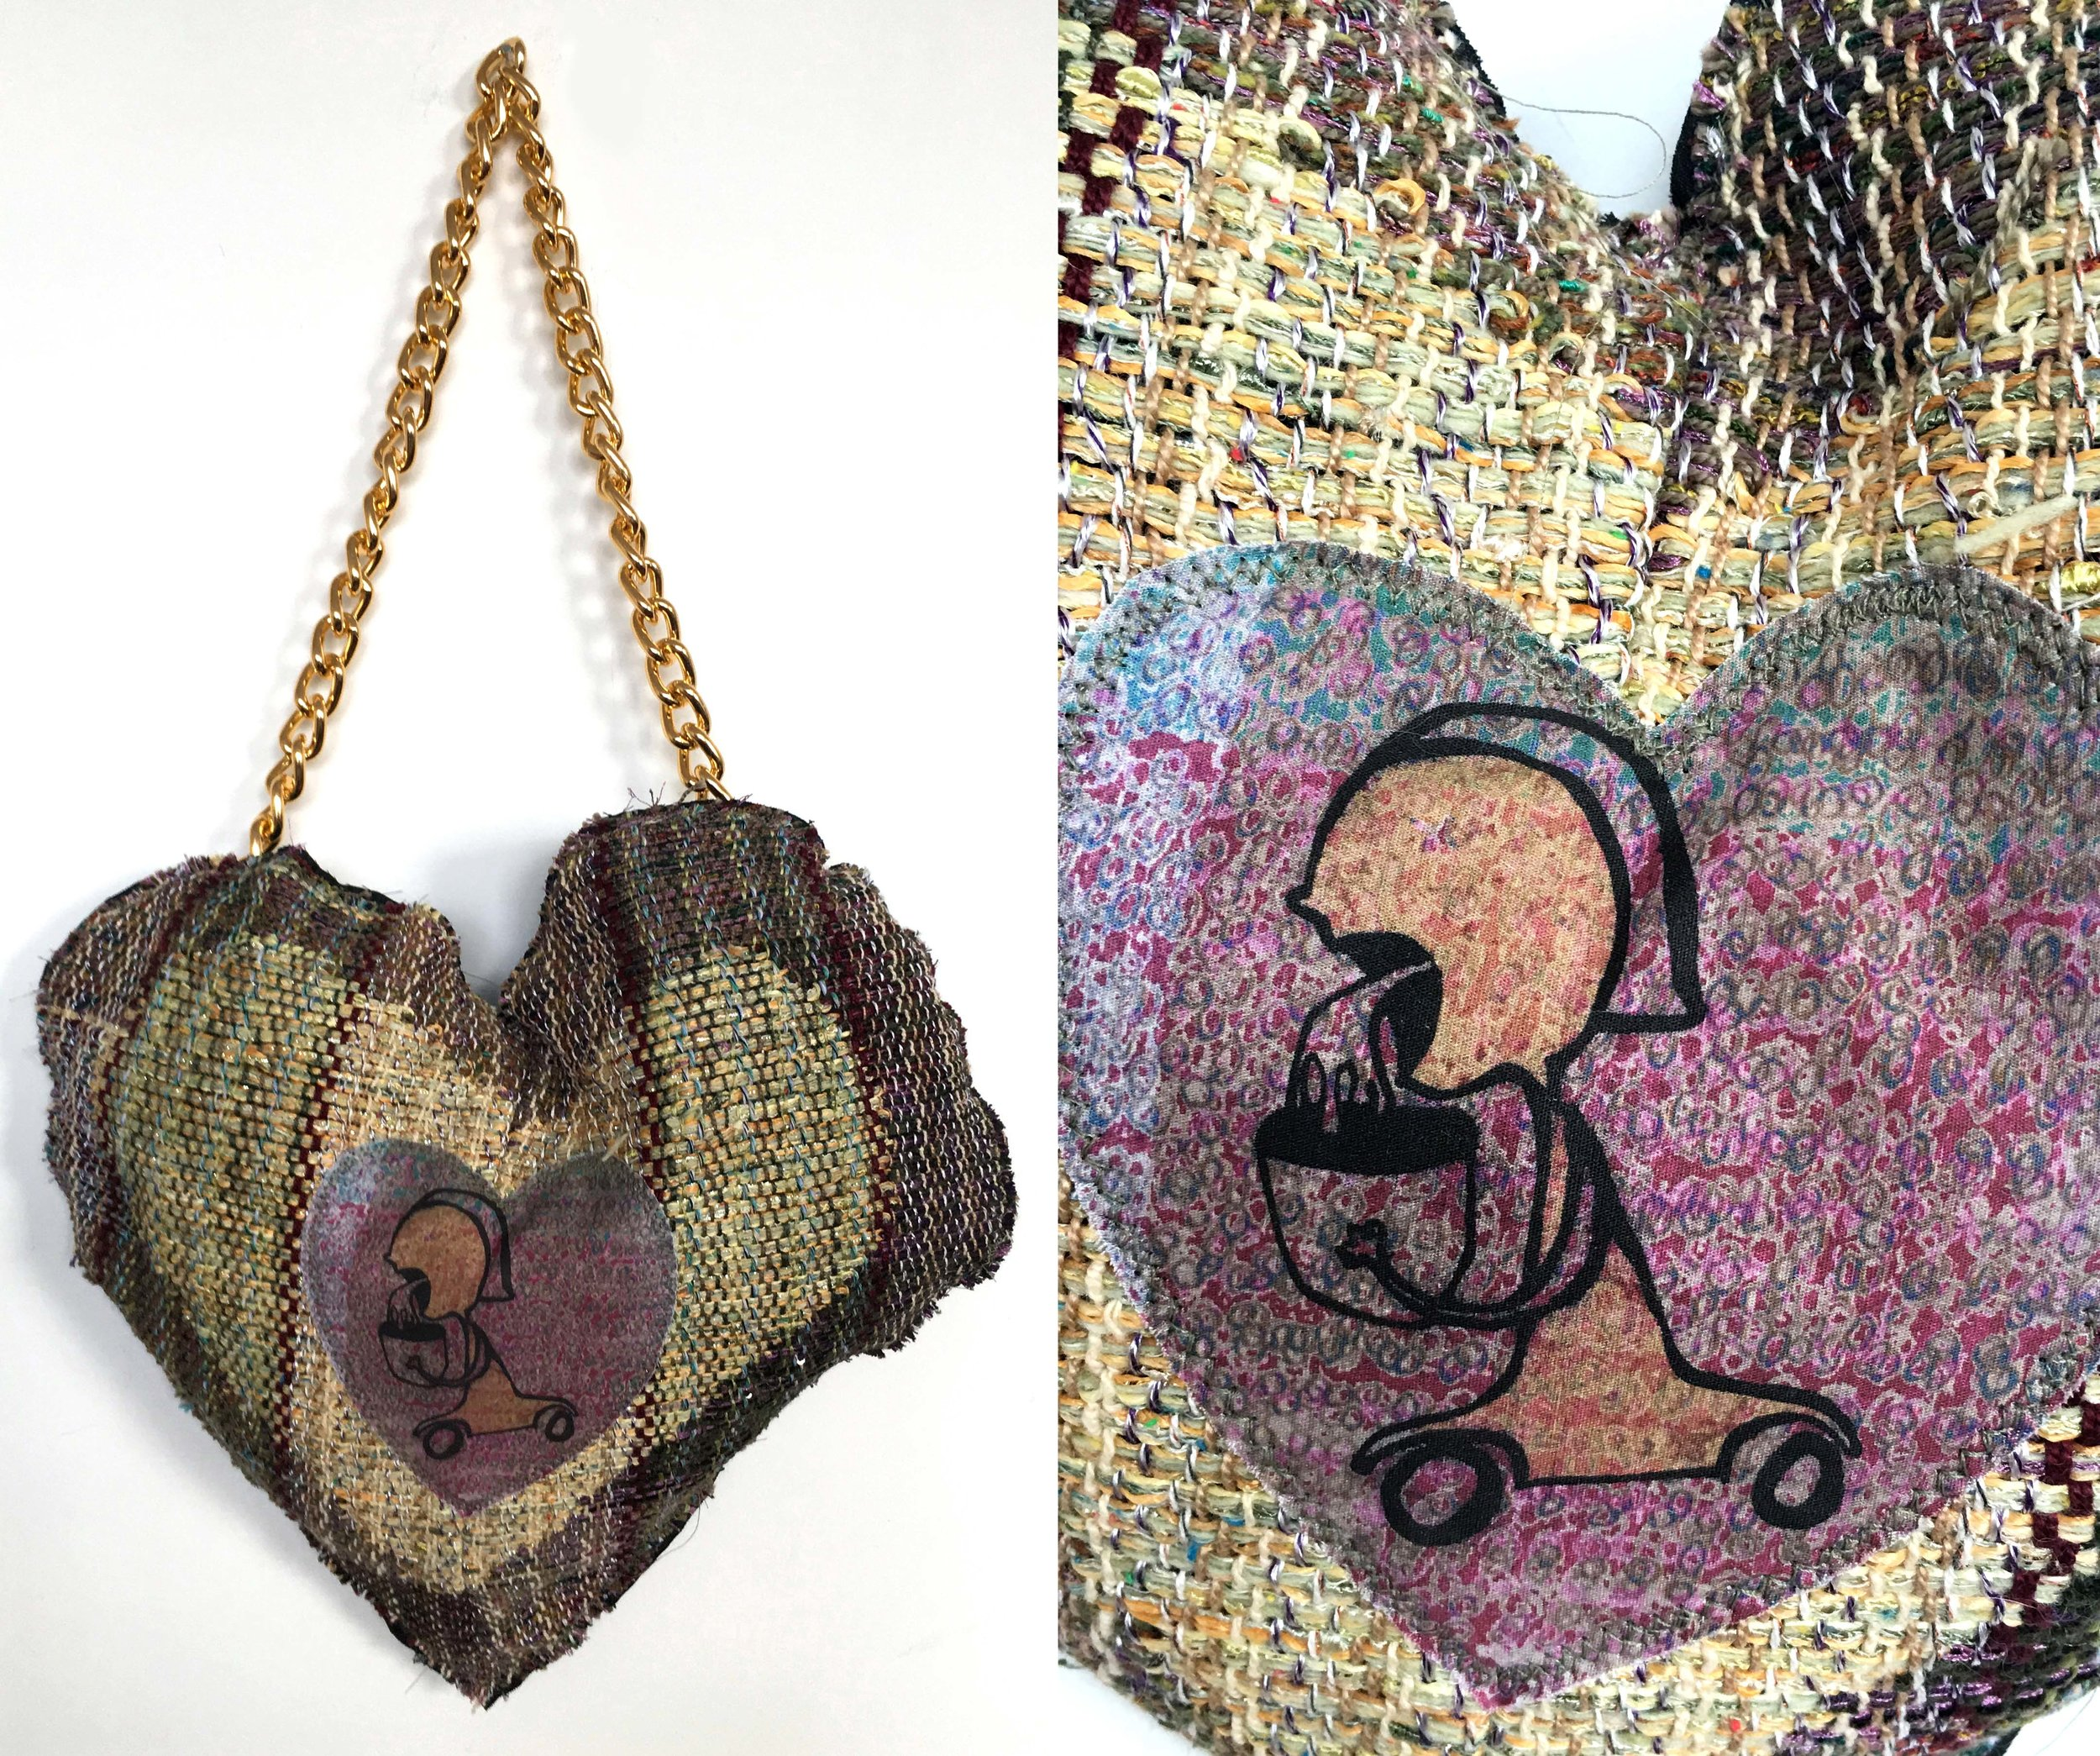 """Love Sick  h: 17"""" x w: 13"""" hand-woven and machine-made fabric, embroidery, inkjet prints, fleece, chain 2017"""